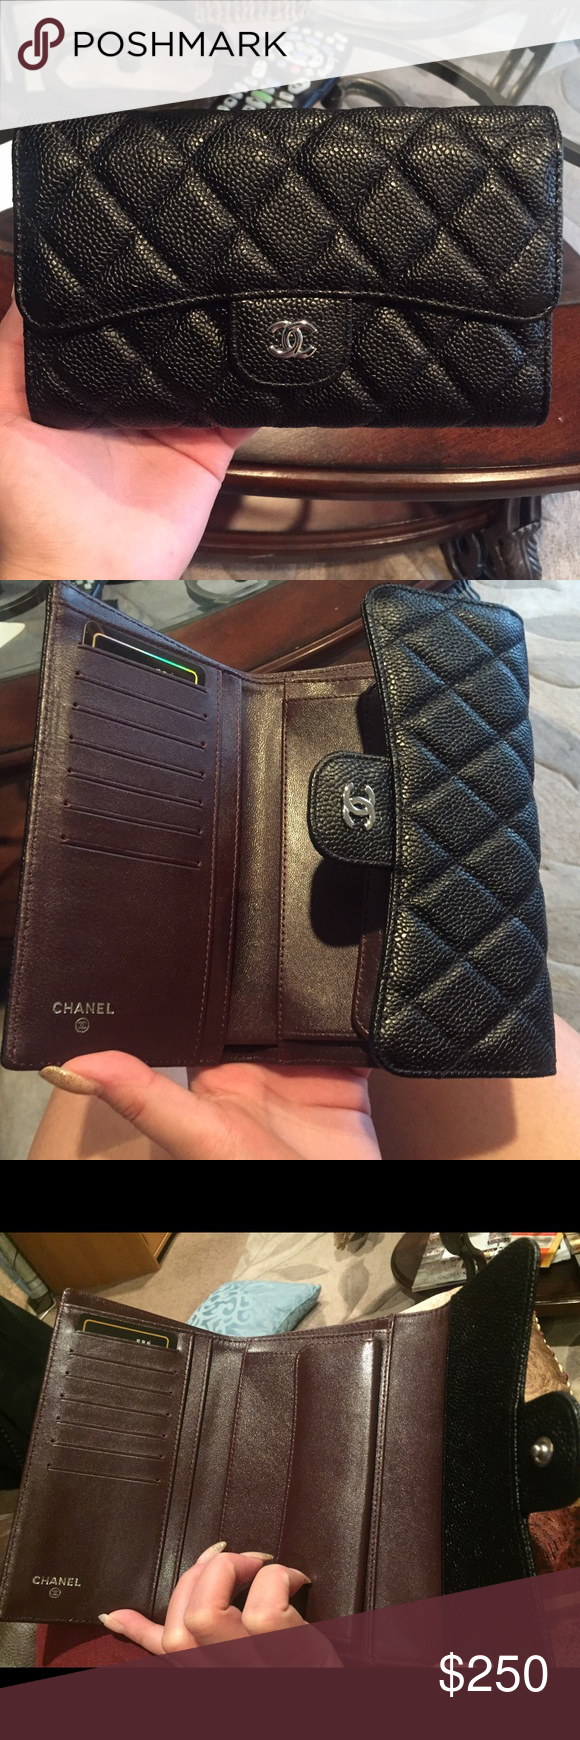 Caviar leather long wallet SHW Comes with complete set Designer wallet in SHW.  🅿️🅿️ price only $150. Email me for additional pics! Comes with box, dust bag, authenticity card, care pamphlet, ribbon, paper bag, camelia flower. Bags Wallets